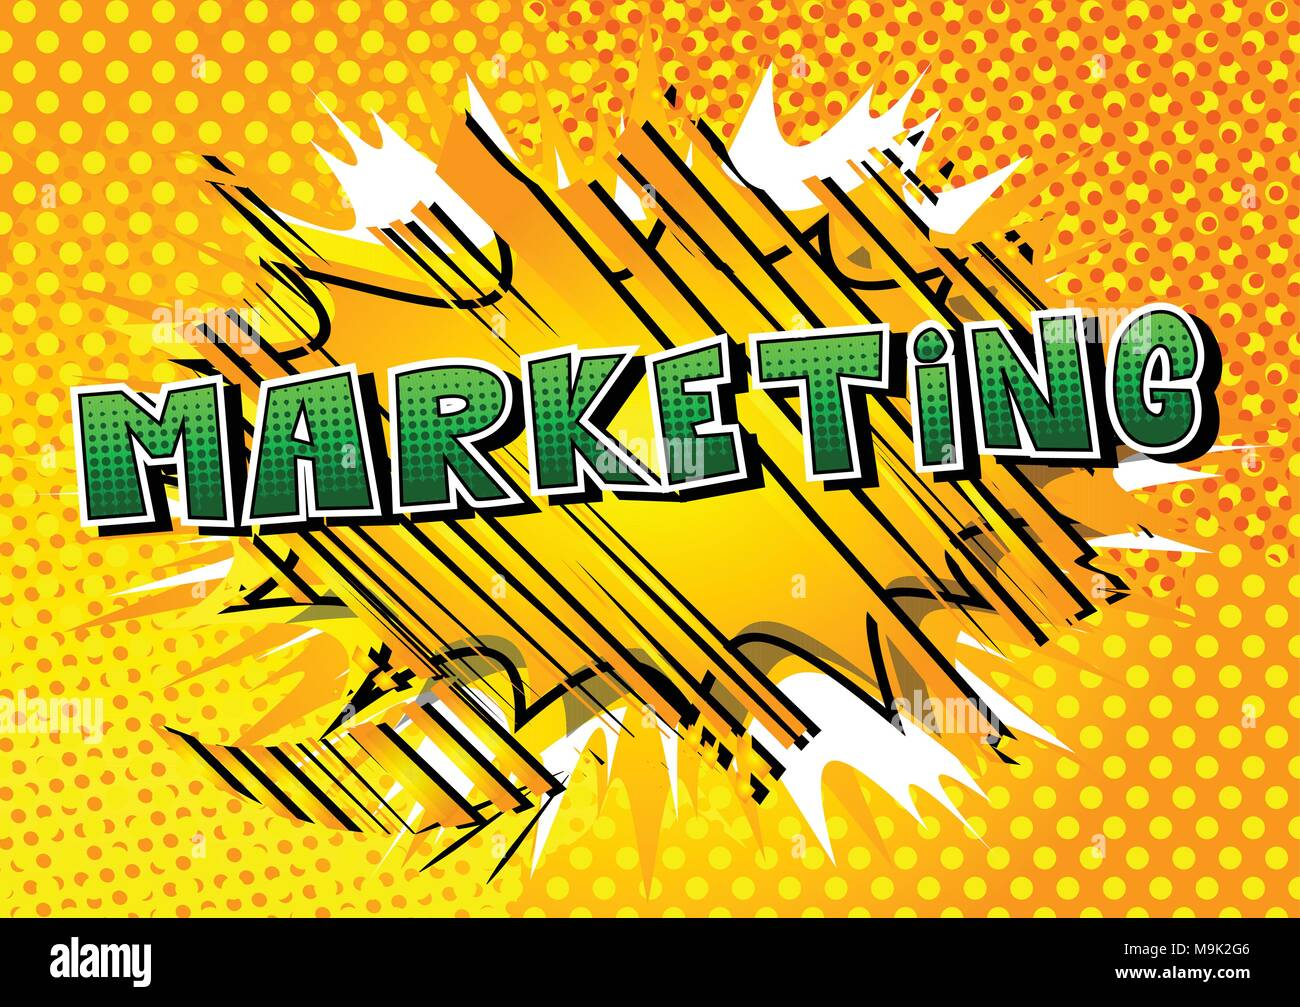 Marketing - Comic book style word on abstract background. - Stock Image